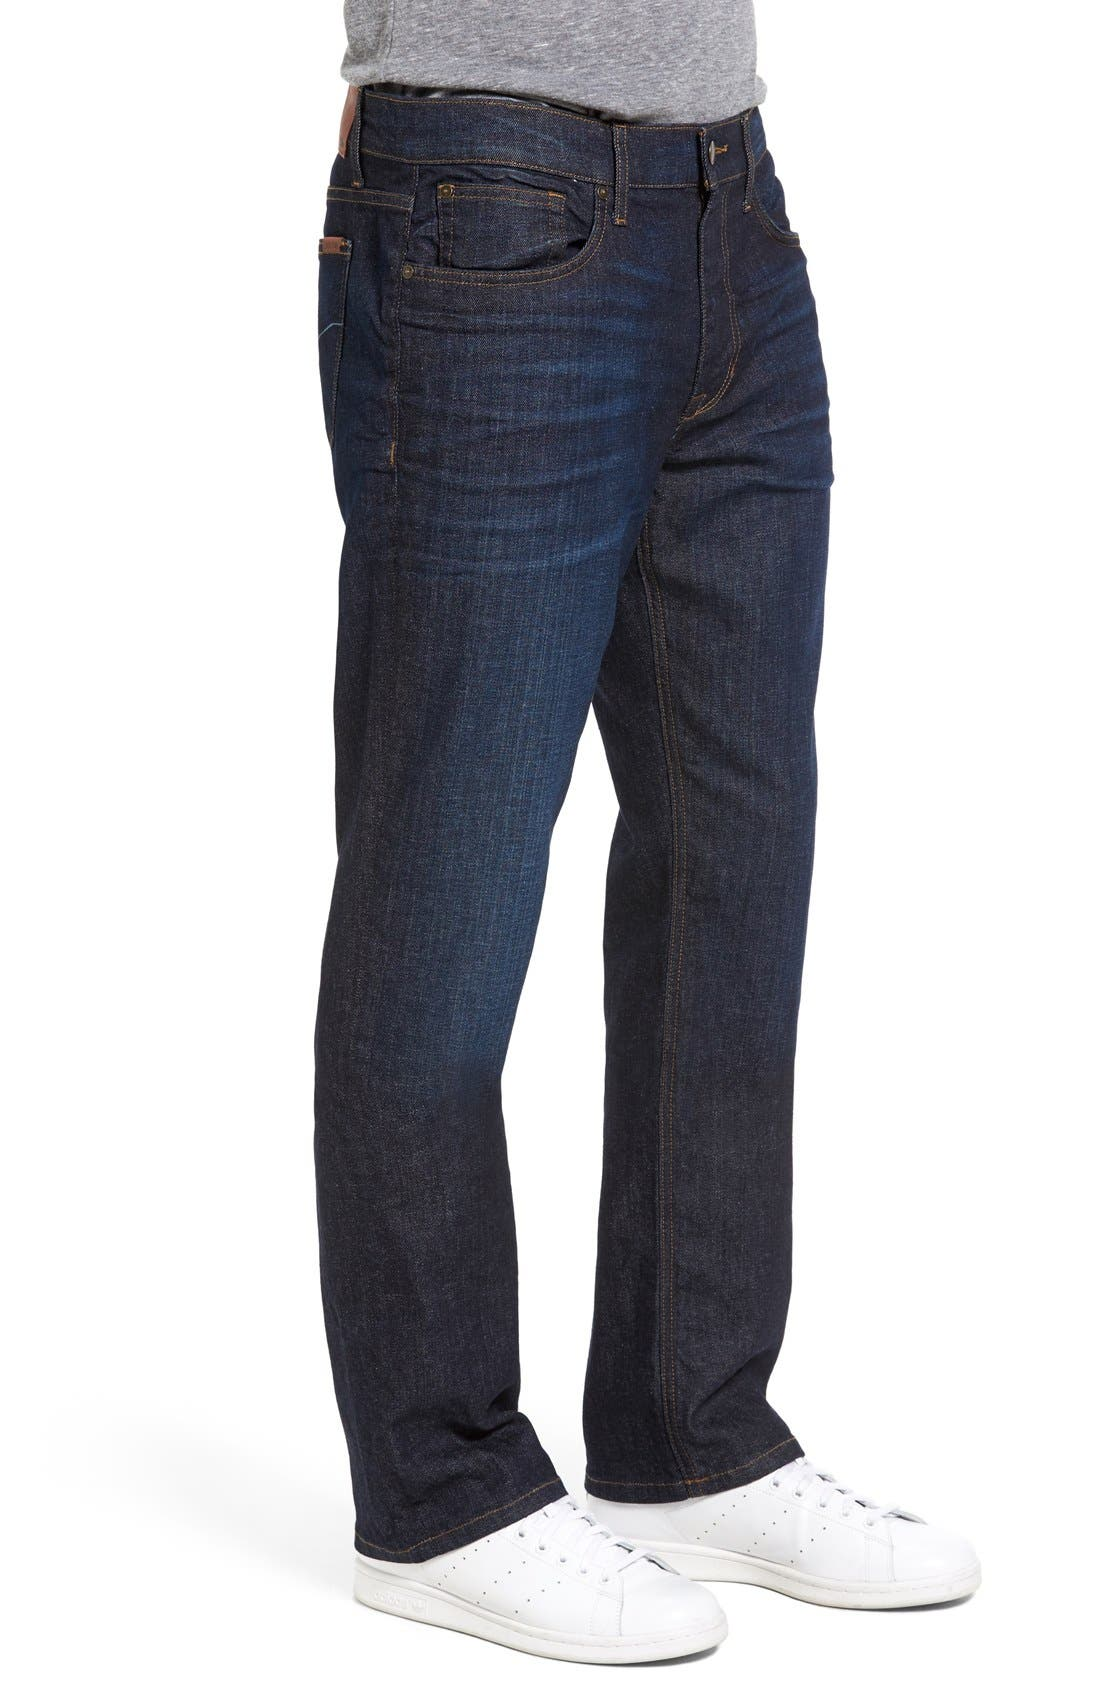 Classic Straight Fit Jeans,                             Alternate thumbnail 8, color,                             TIMOTHY